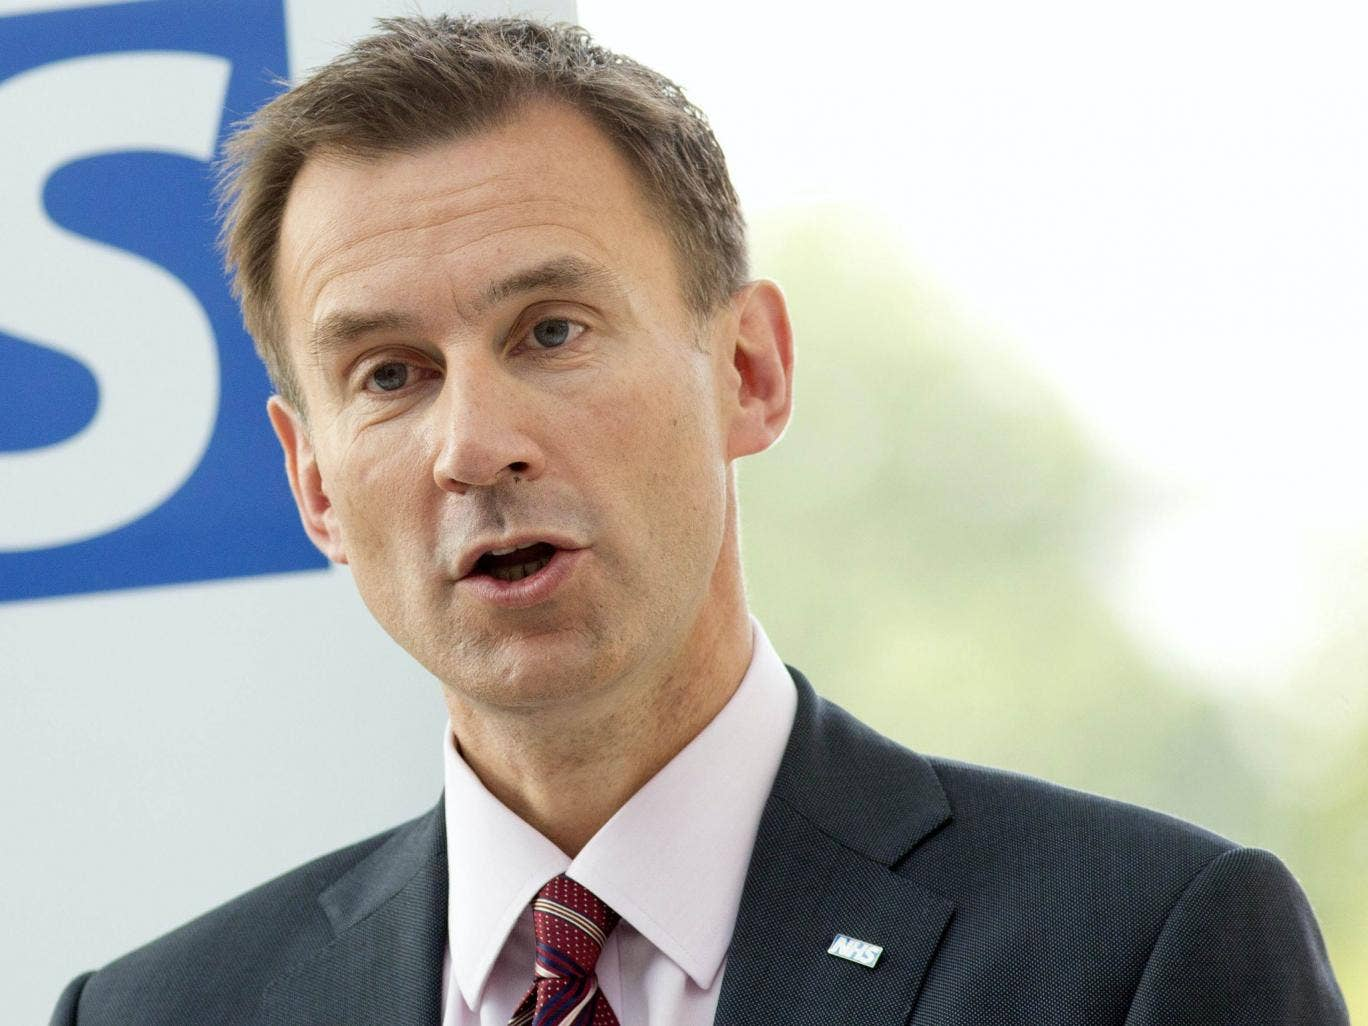 Jeremy Hunt has been criticised for presiding over staff cuts